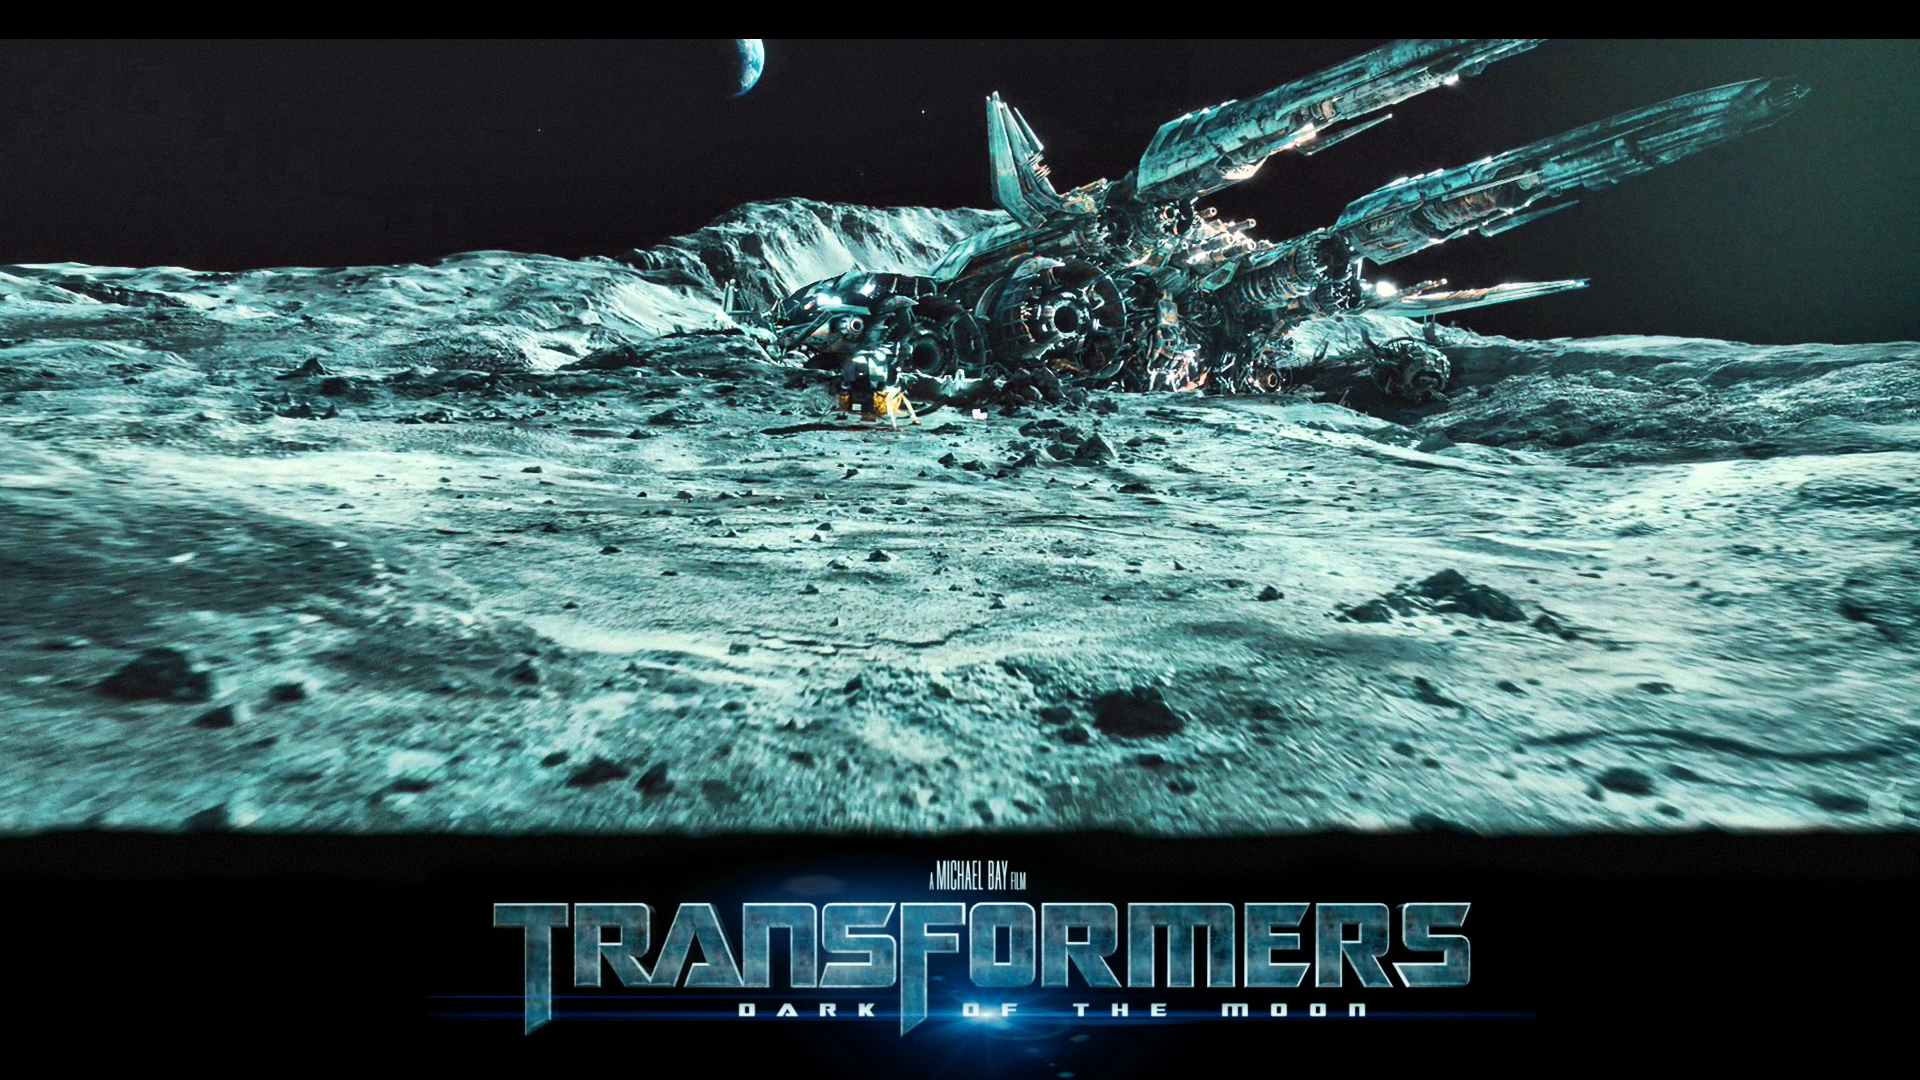 Transformers Dark of the Moon wallpaper 6